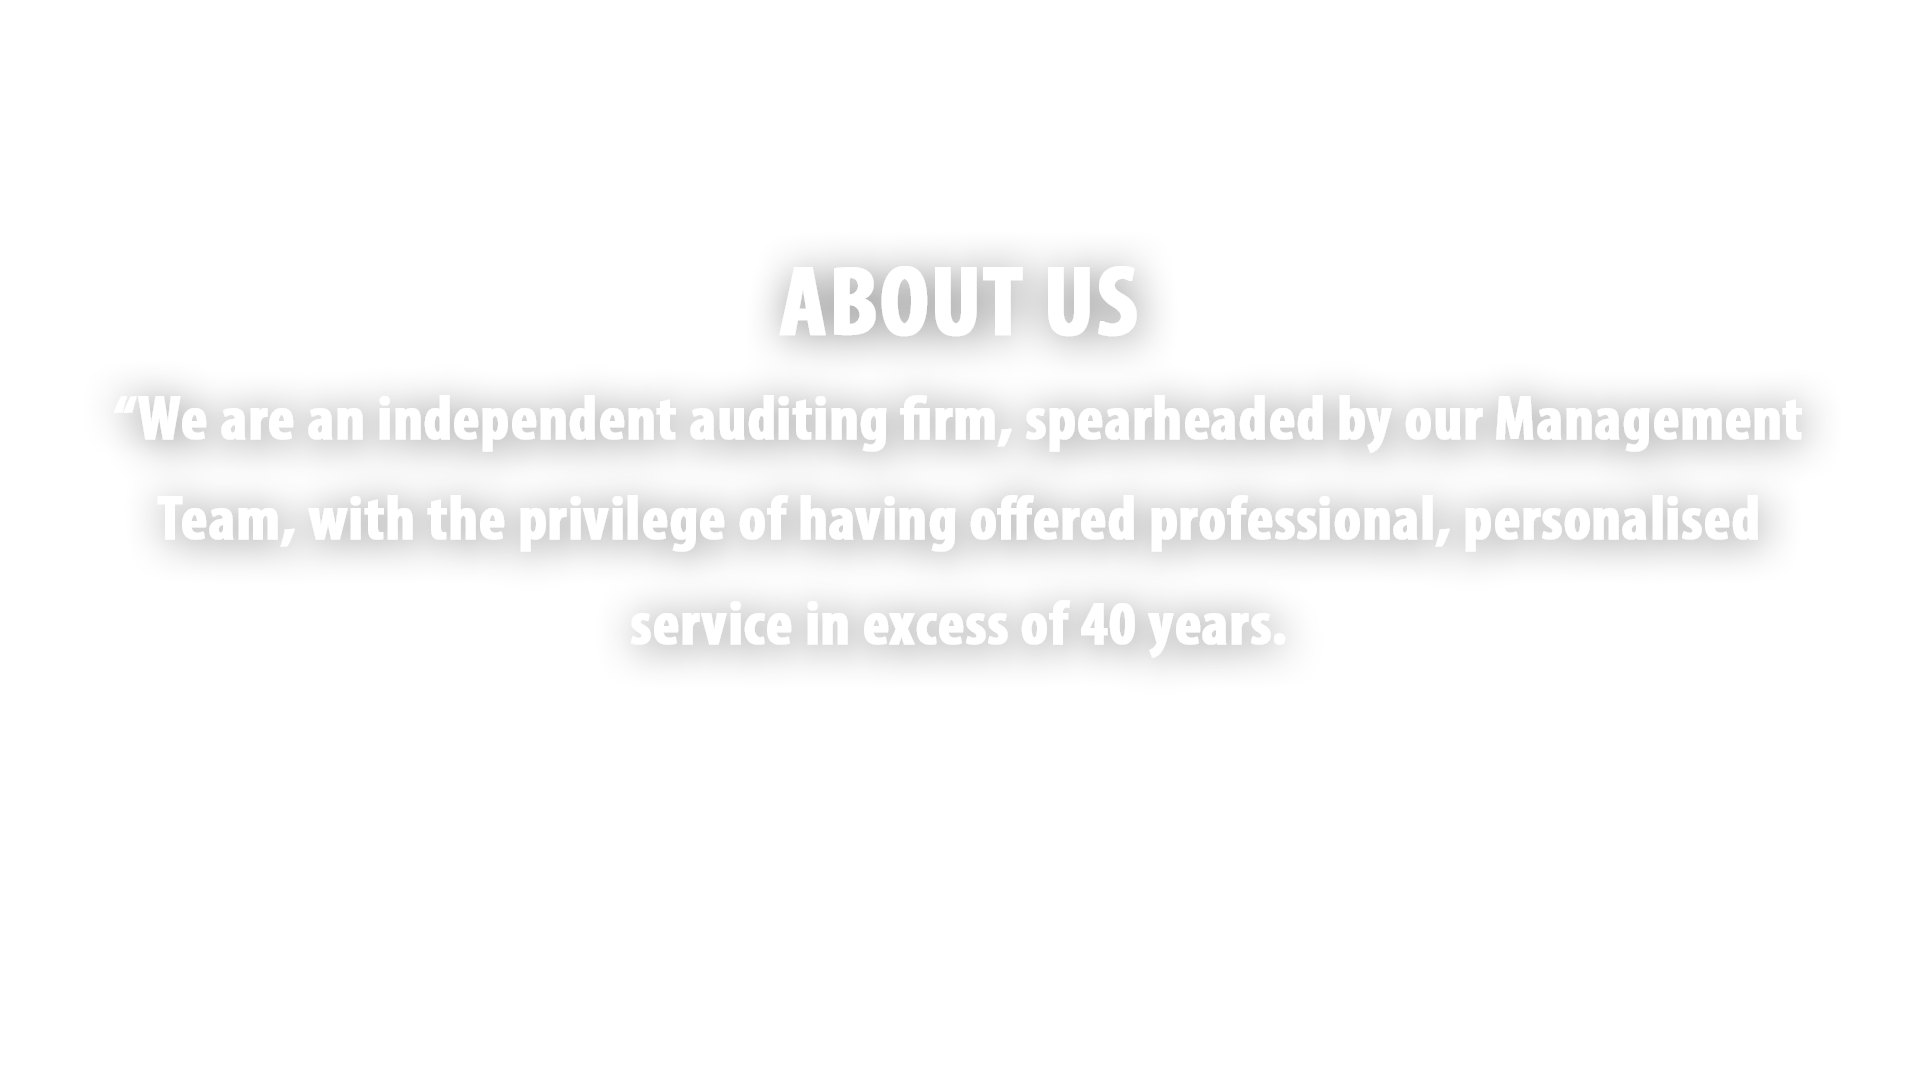 """We are an independent auditing firm, spearheaded by our Management Team, with the privilege of having offered professional, personalised service in excess of 40 years."